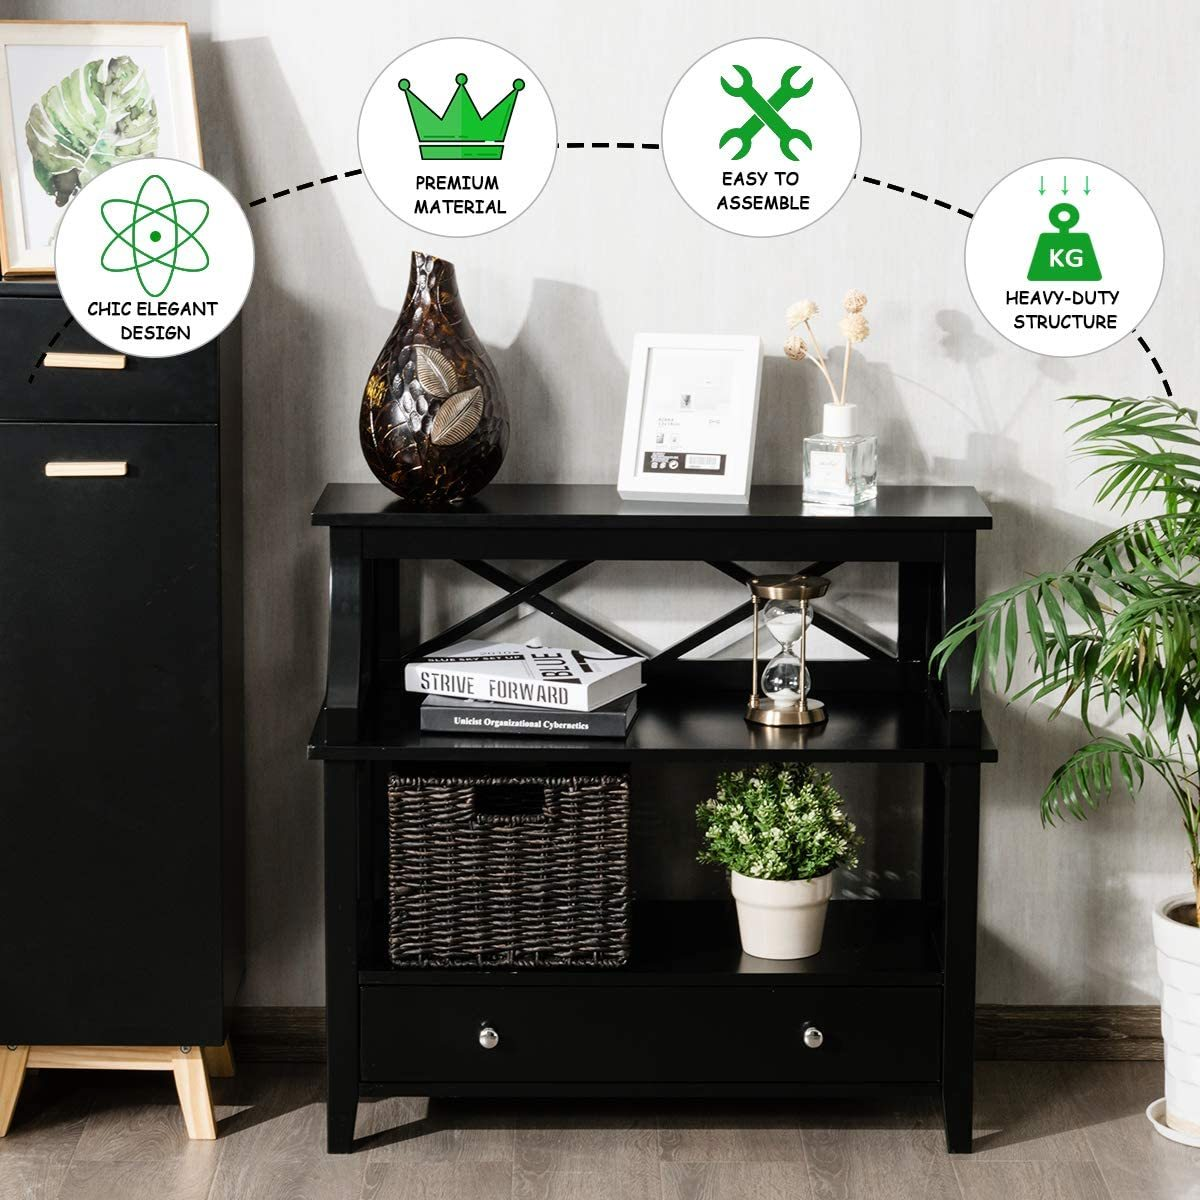 3 Tier Console Table with a Large Drawer, Sofa Side Table with Storage Shelves, Entryway Hall Table Furniture, Display Rack Stand for Living Room Bedroom Study, Easy Assembly (Black)